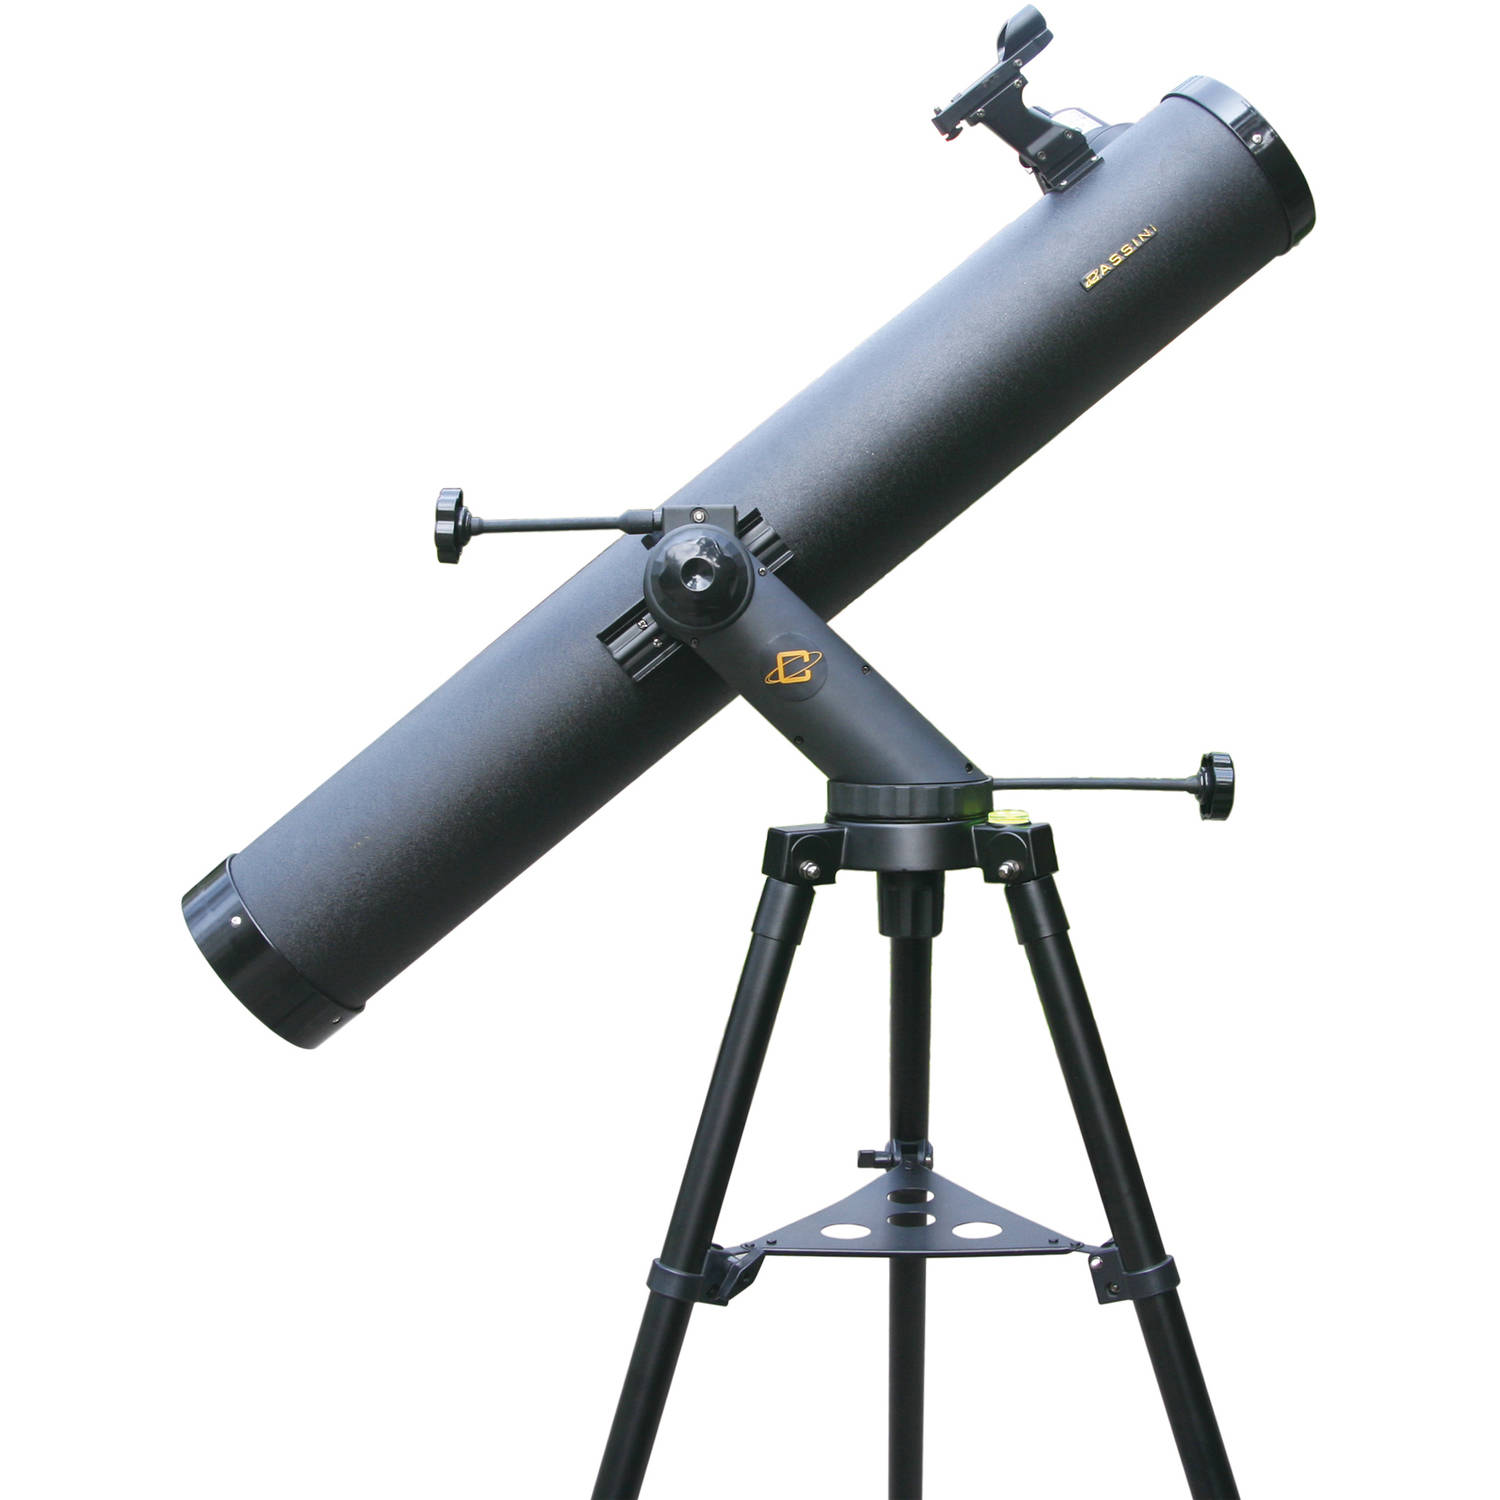 Cassini 1000mm x 120mm Tracker Series Reflector Telescope, Electronic Focus, Black